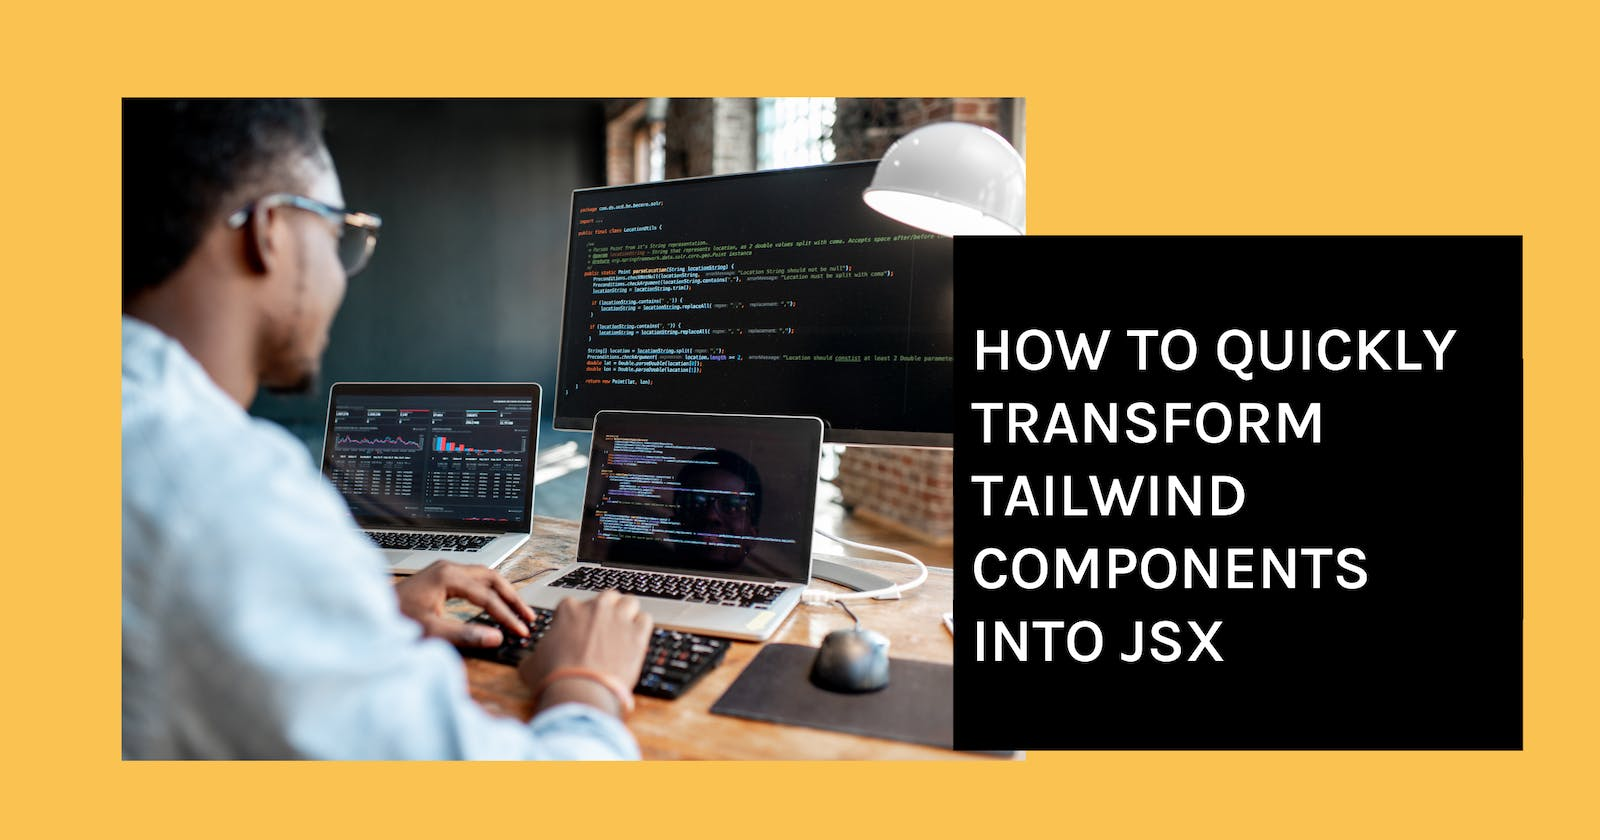 How to Quickly Transform Tailwind Components into JSX